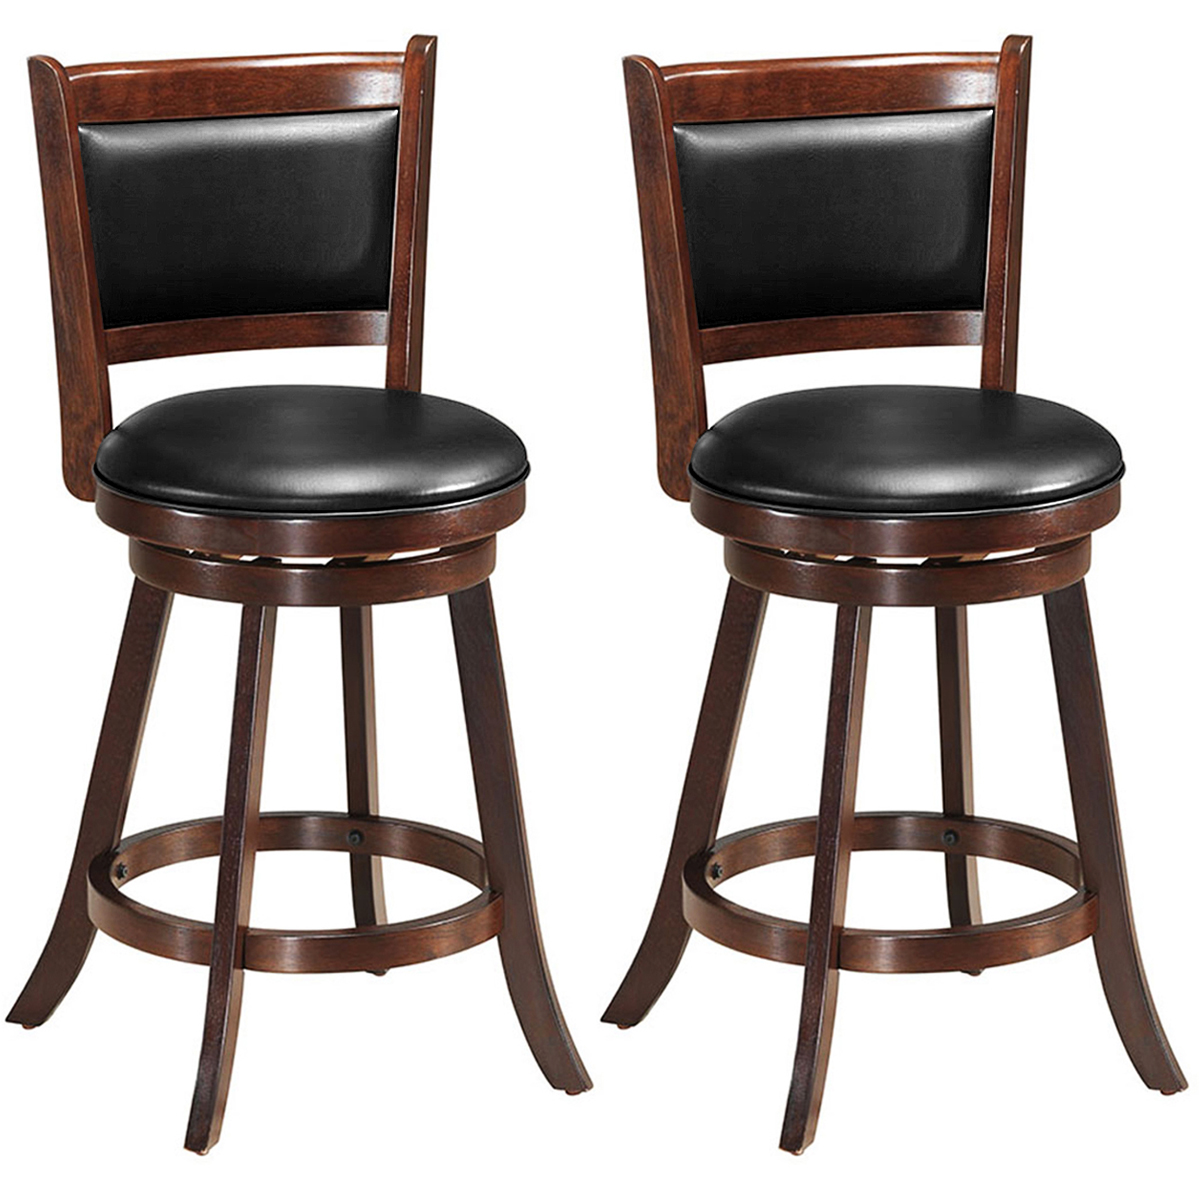 Costway Set Of 2 24'' Swivel Counter Stool Wooden Dining Chair Upholstered Seat Espresso